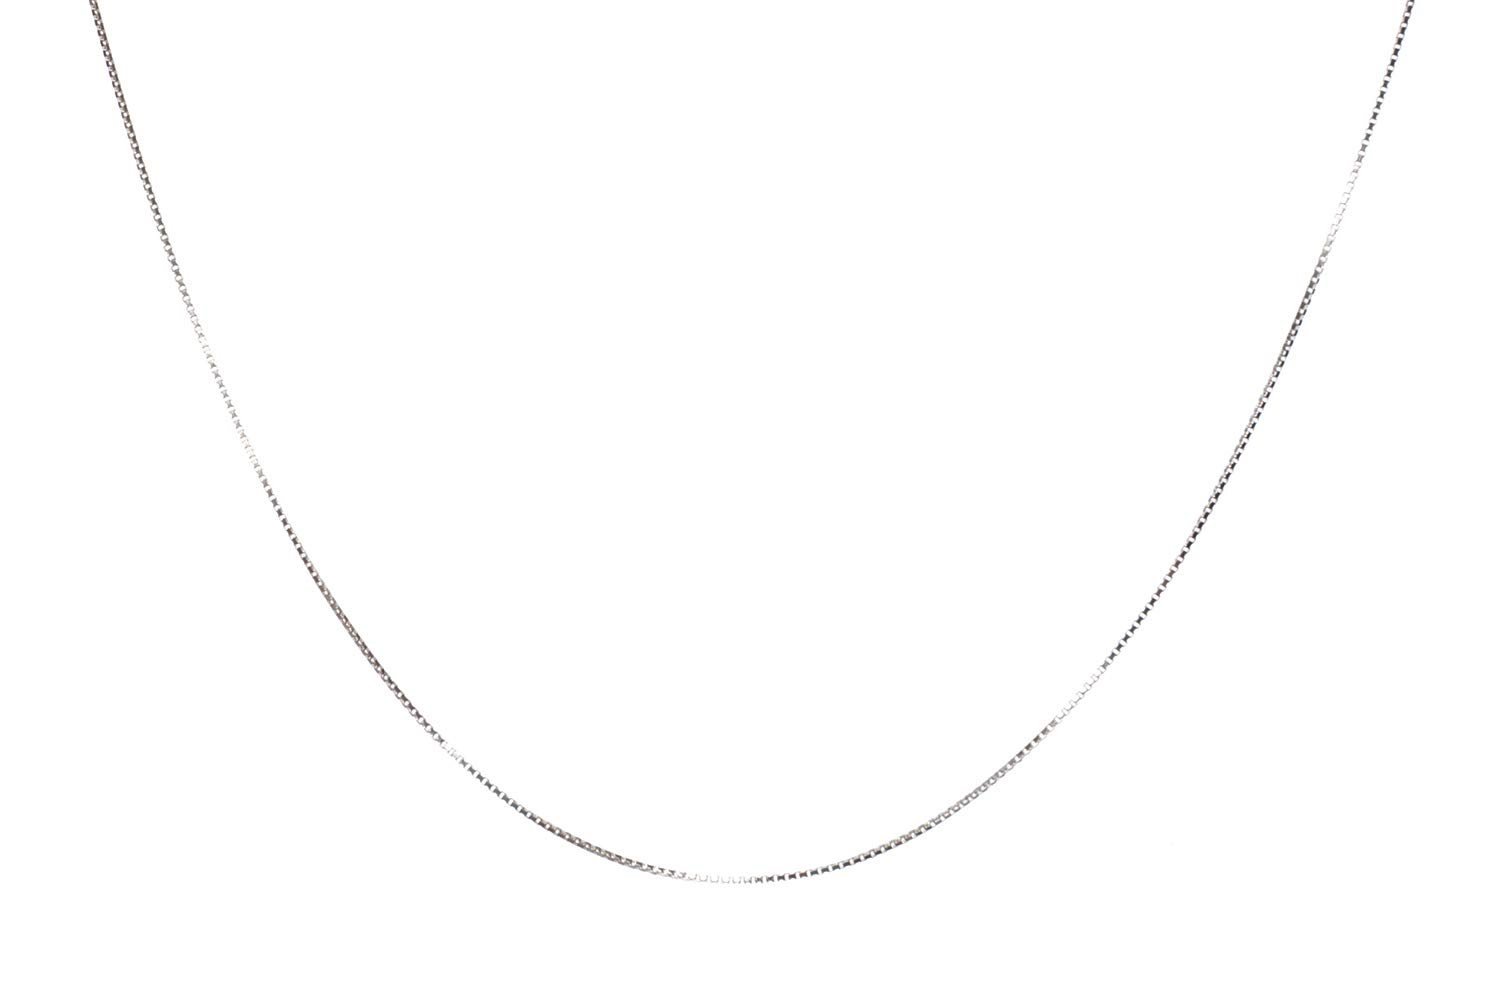 NAGHC 925 Sterling Silver Chain 0.8MM Delicate Box Chain - Italian Necklace Chain - Super Thin & Strong Lovely Chain (20)